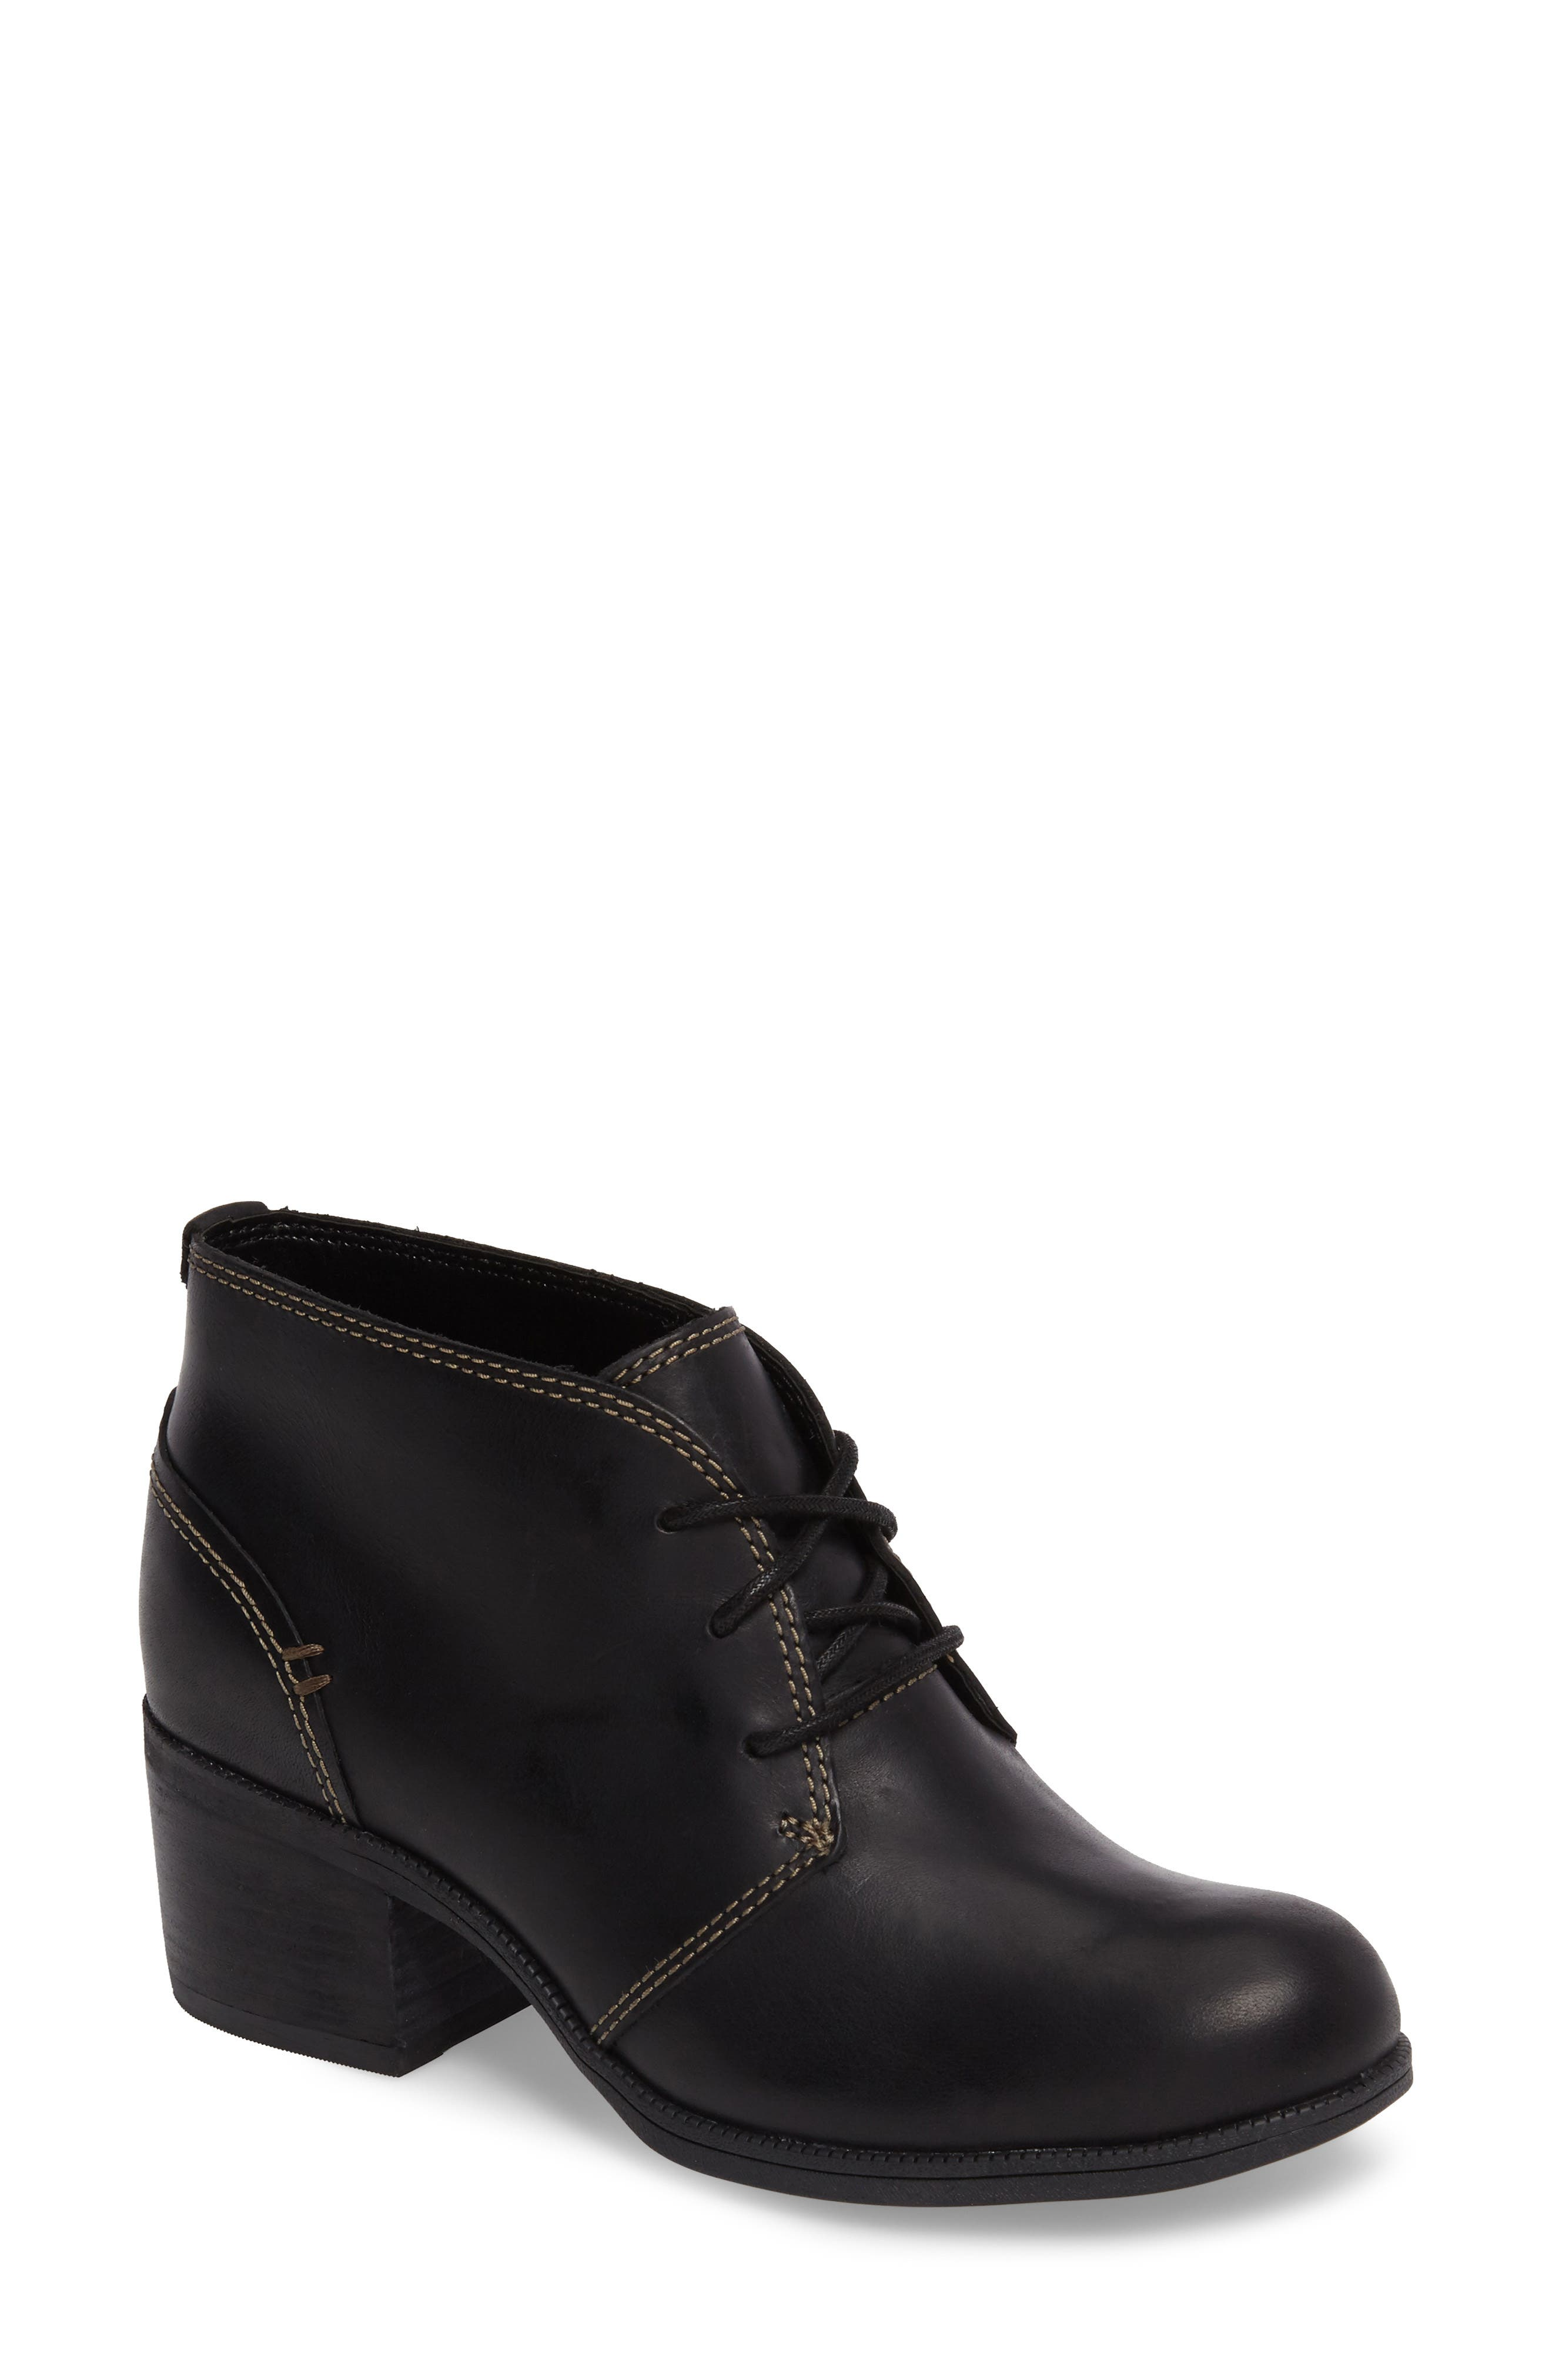 Maypearl Floral Boot,                         Main,                         color, 001